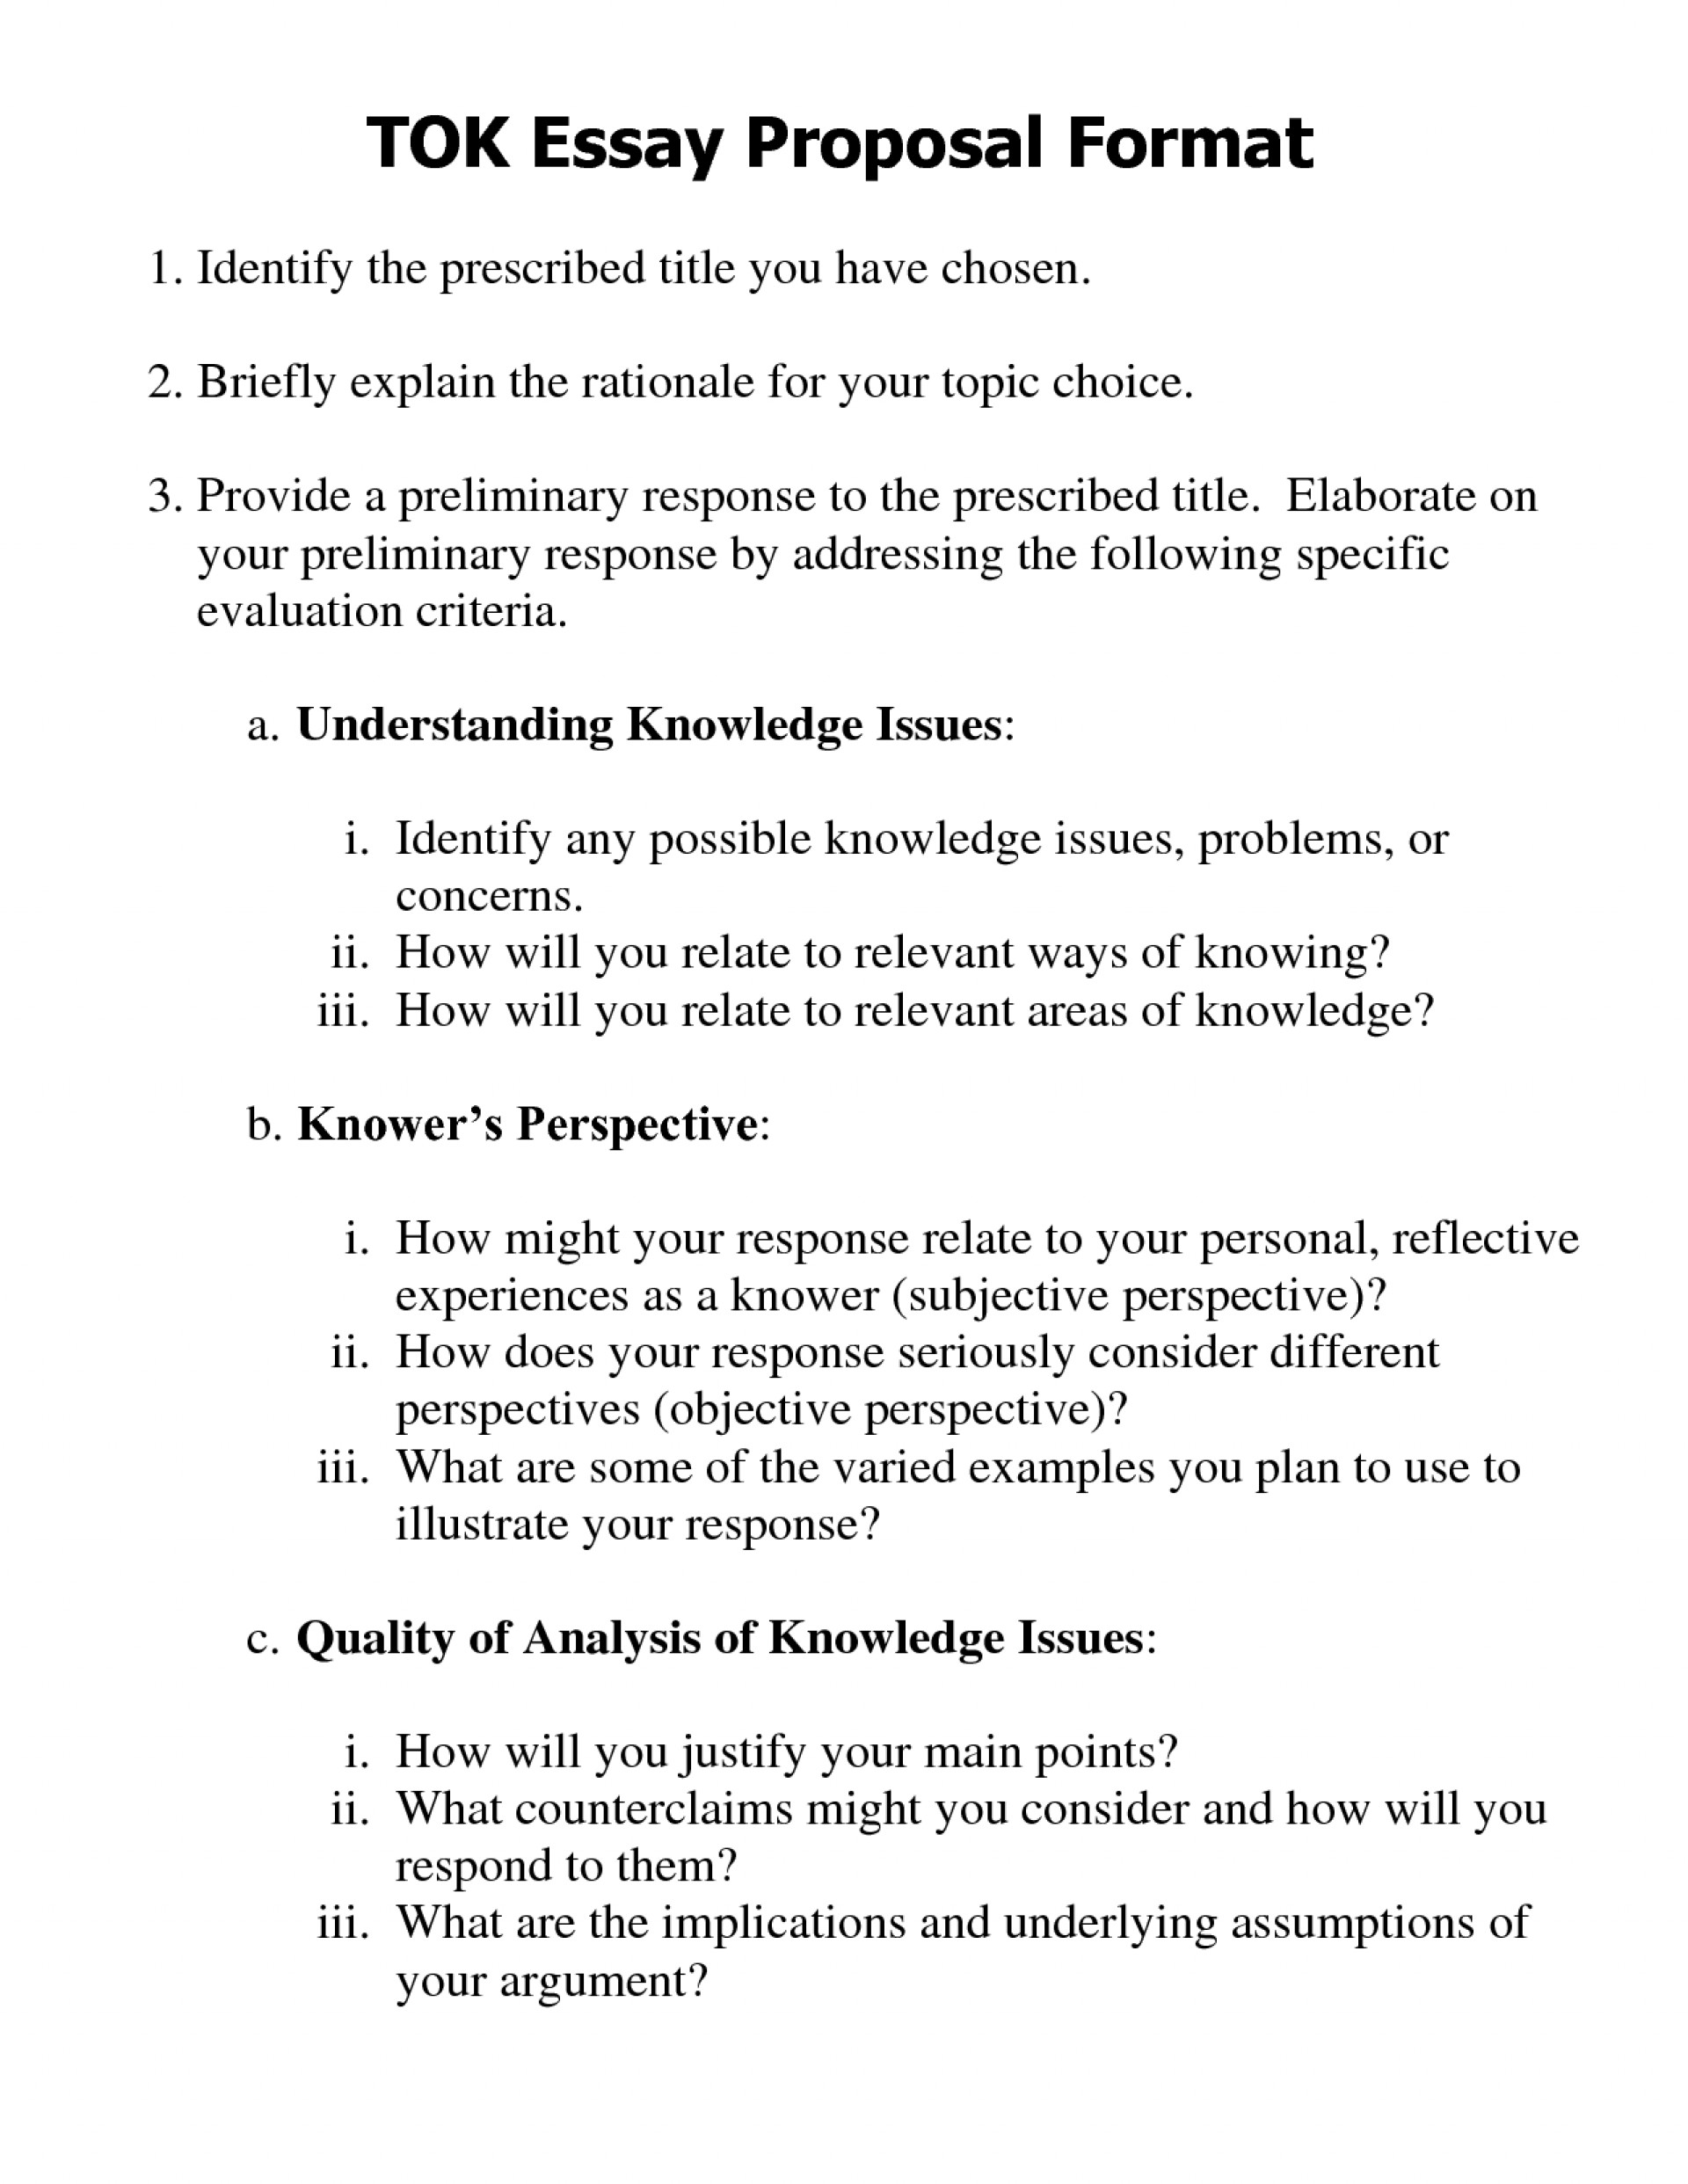 001 Olxkktmp0l Proposal Essays Essay Awesome Modest Examples On Bullying 1920